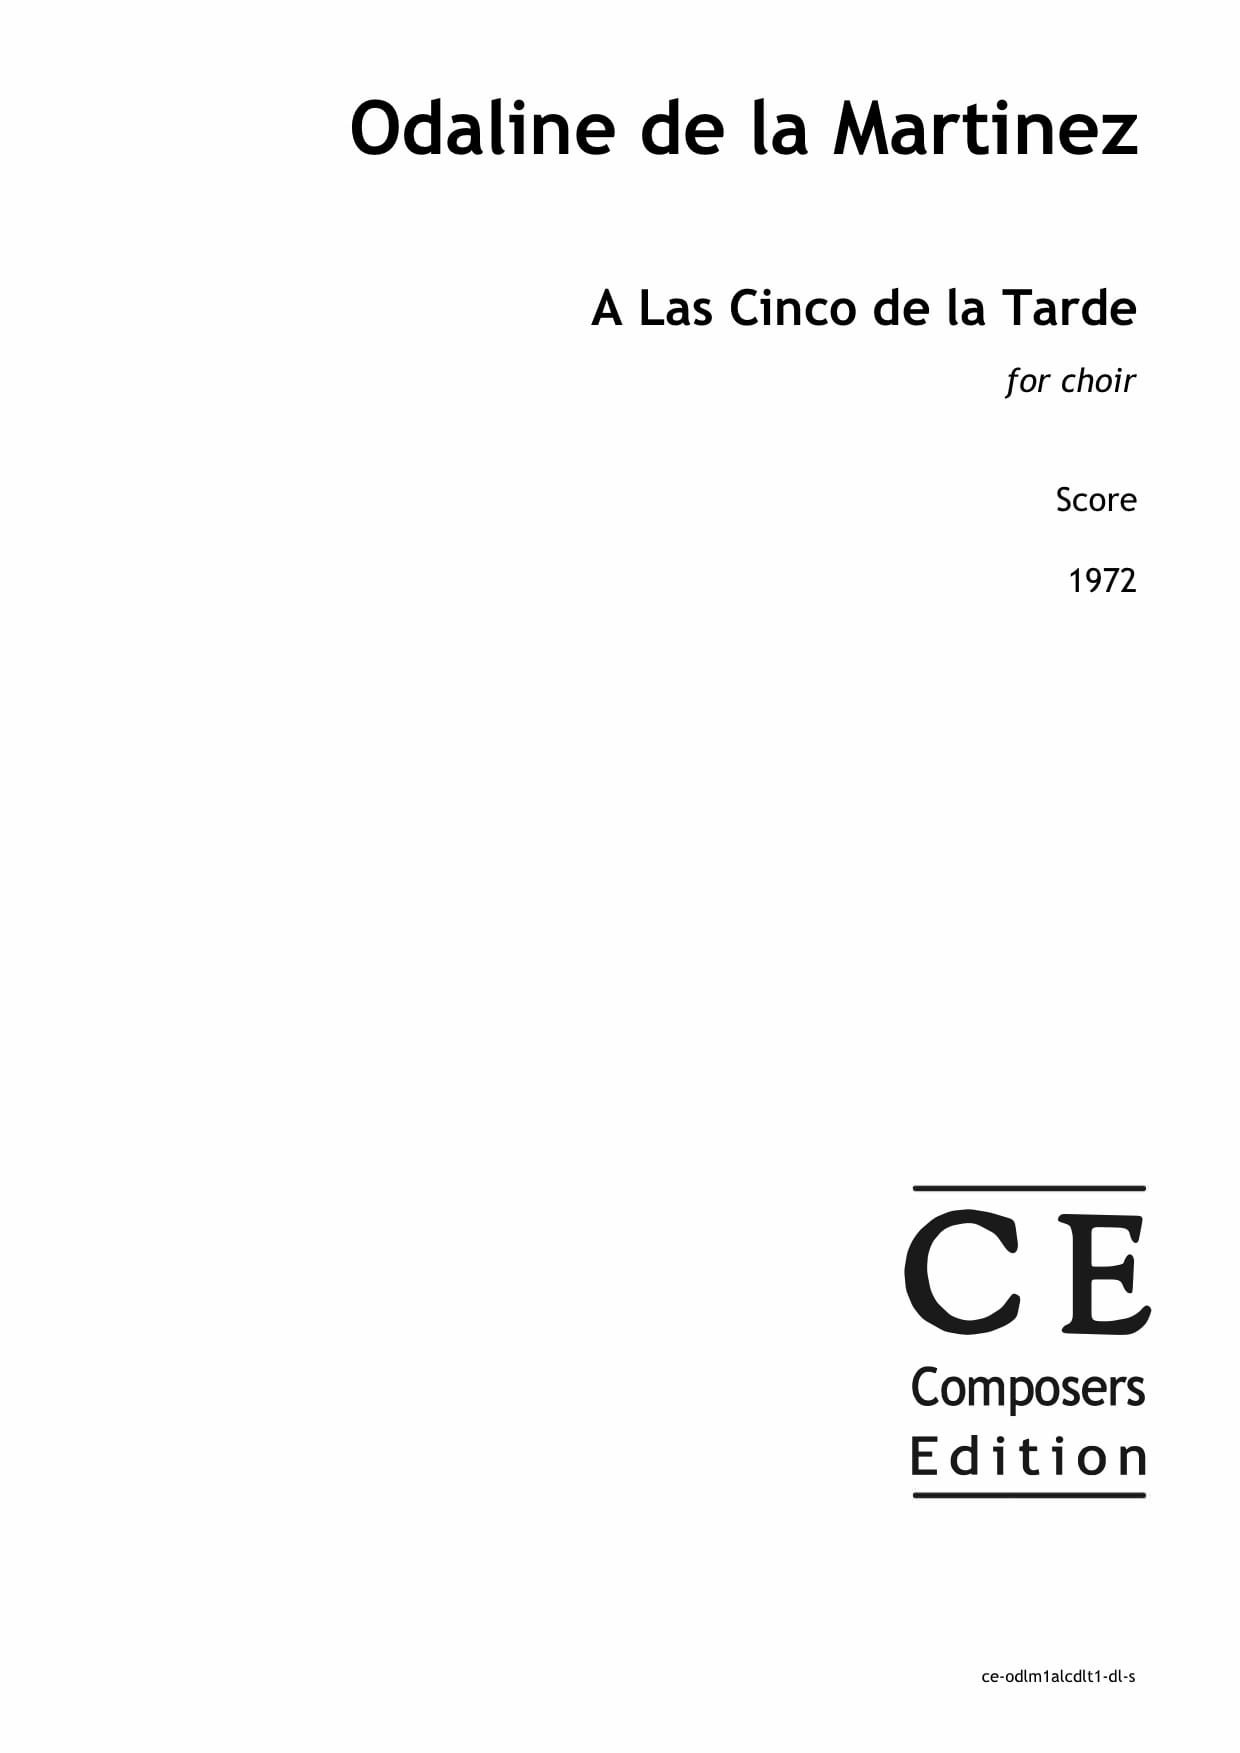 Odaline de la Martinez: A Las Cinco de la Tarde for choir